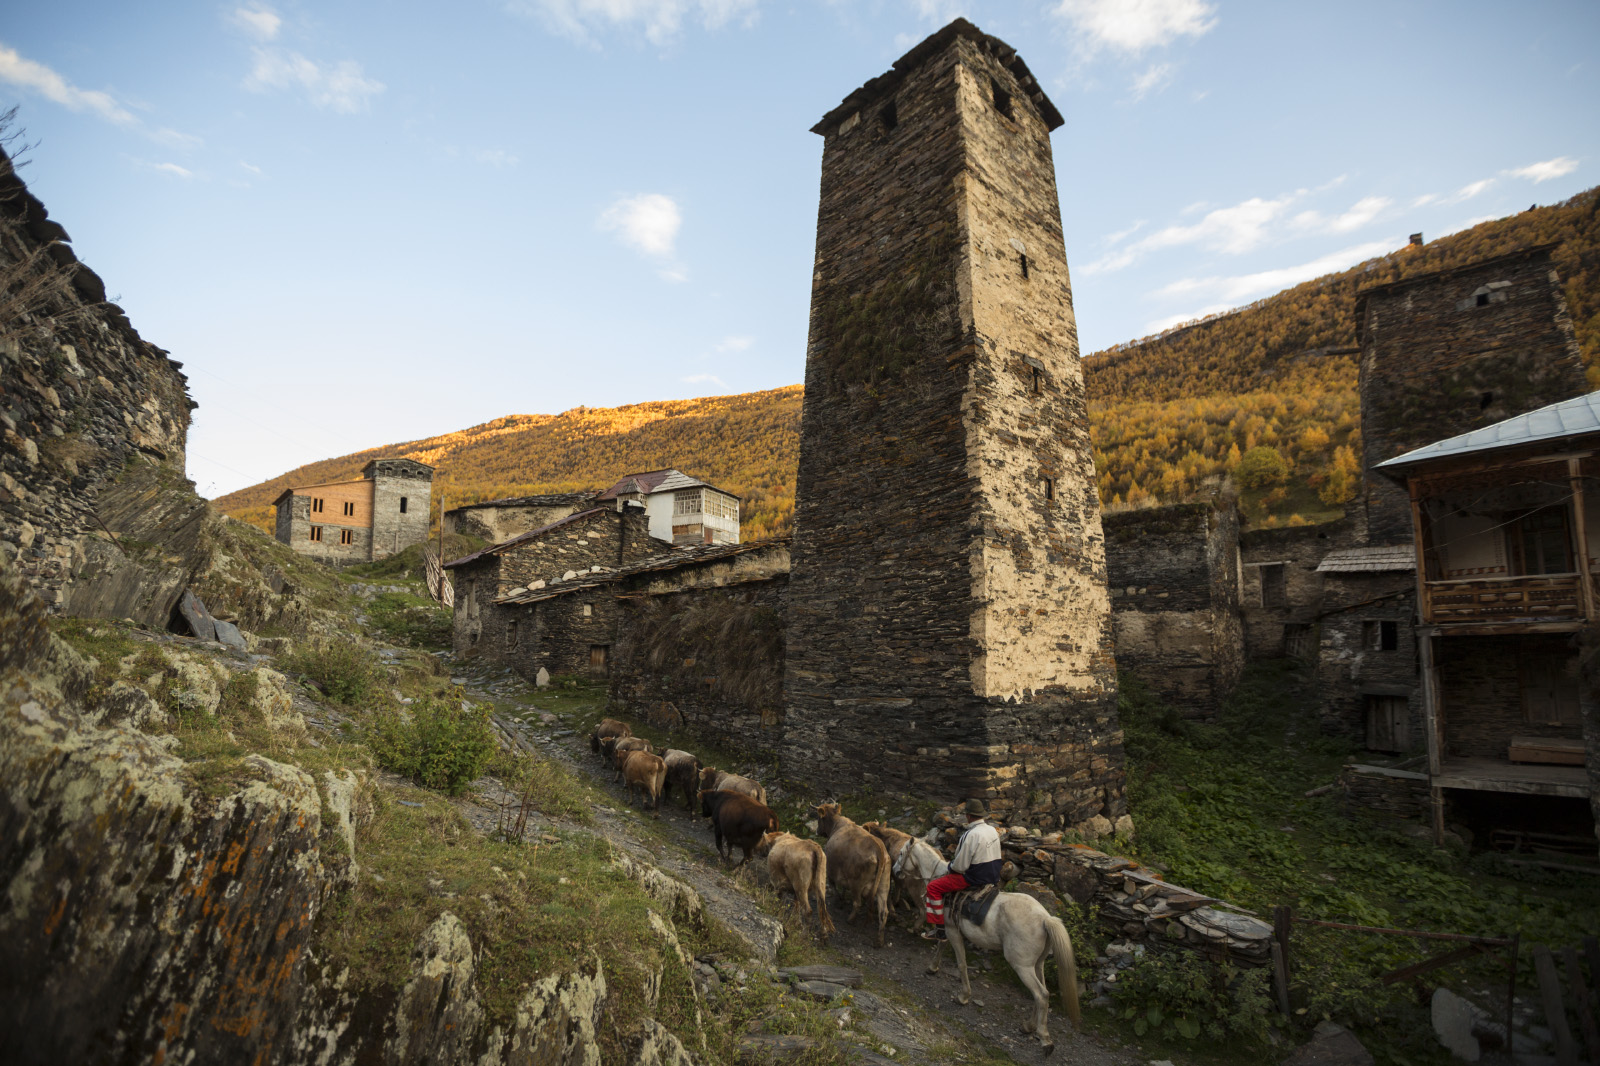 The village of Ushguli, Svanetia, Georgia.The Ushguli villages contain buildings that are part of the UNESCO Heritage site of Upper Svaneti.Altitude is 2,410 metres (7,910 ft).It is located at the foot of Shkhara, one of the highest Caucasian summits. About 70 families (about 200 people) live in the area, enough to support a small school. The area is snow-covered for 6 months of the year, and often the road to Mestia is impassable.Typical Svanetian protective towers are found throughout the village. The Ushguli Chapel located on a hilltop near the village dates back to the 12th century.